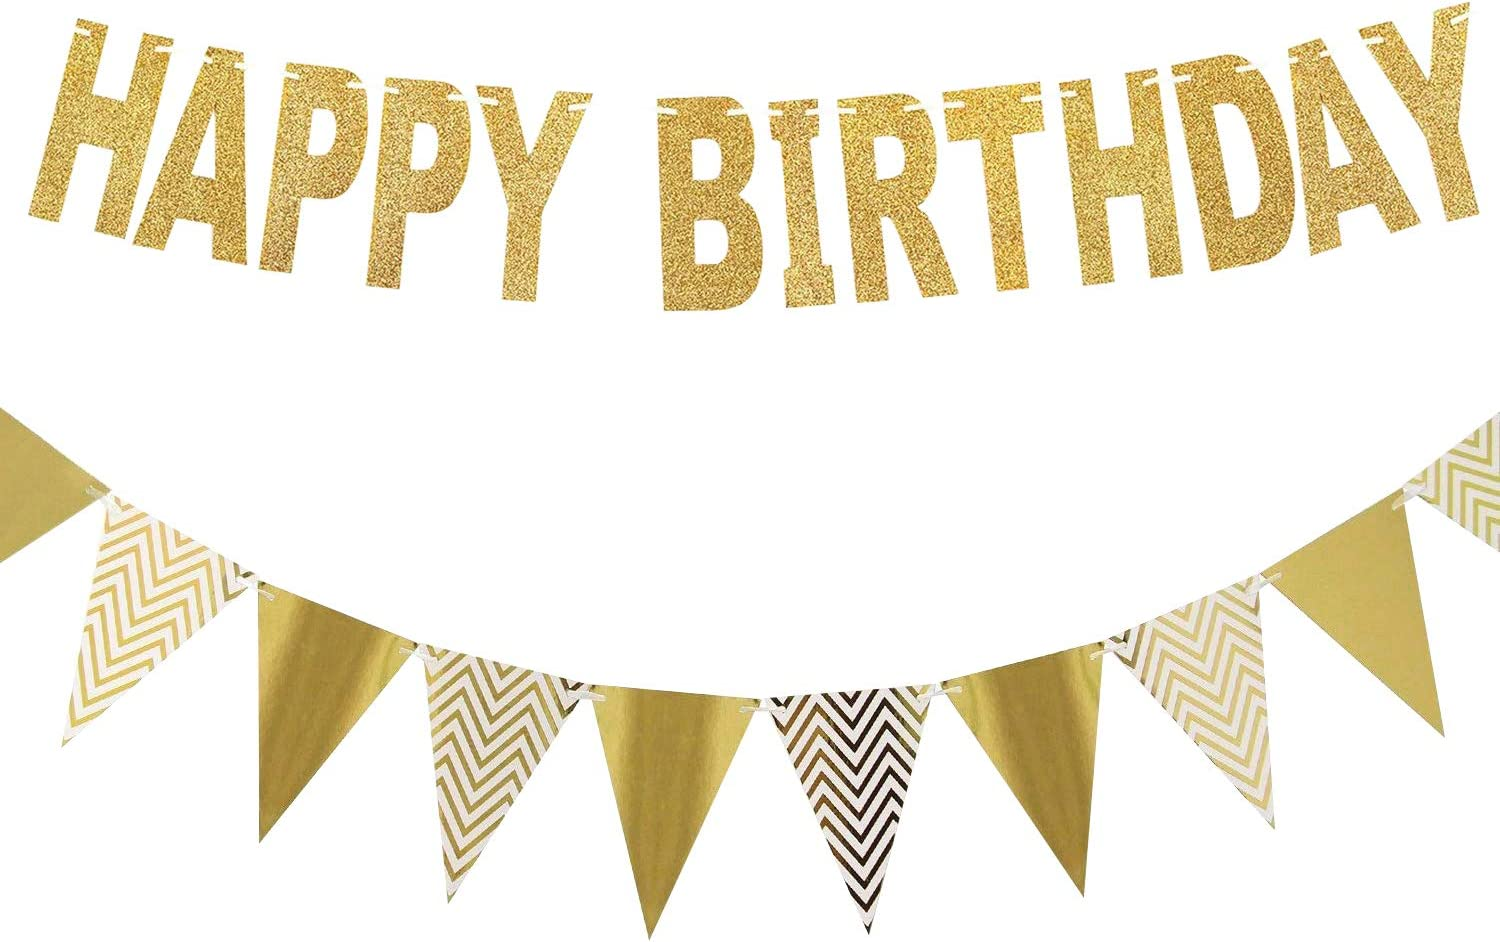 Redear Happy Birthday Banner, Gold Glitter Pennant Banner Sparkly Triangle Flags Bunting for Birthday Decorations